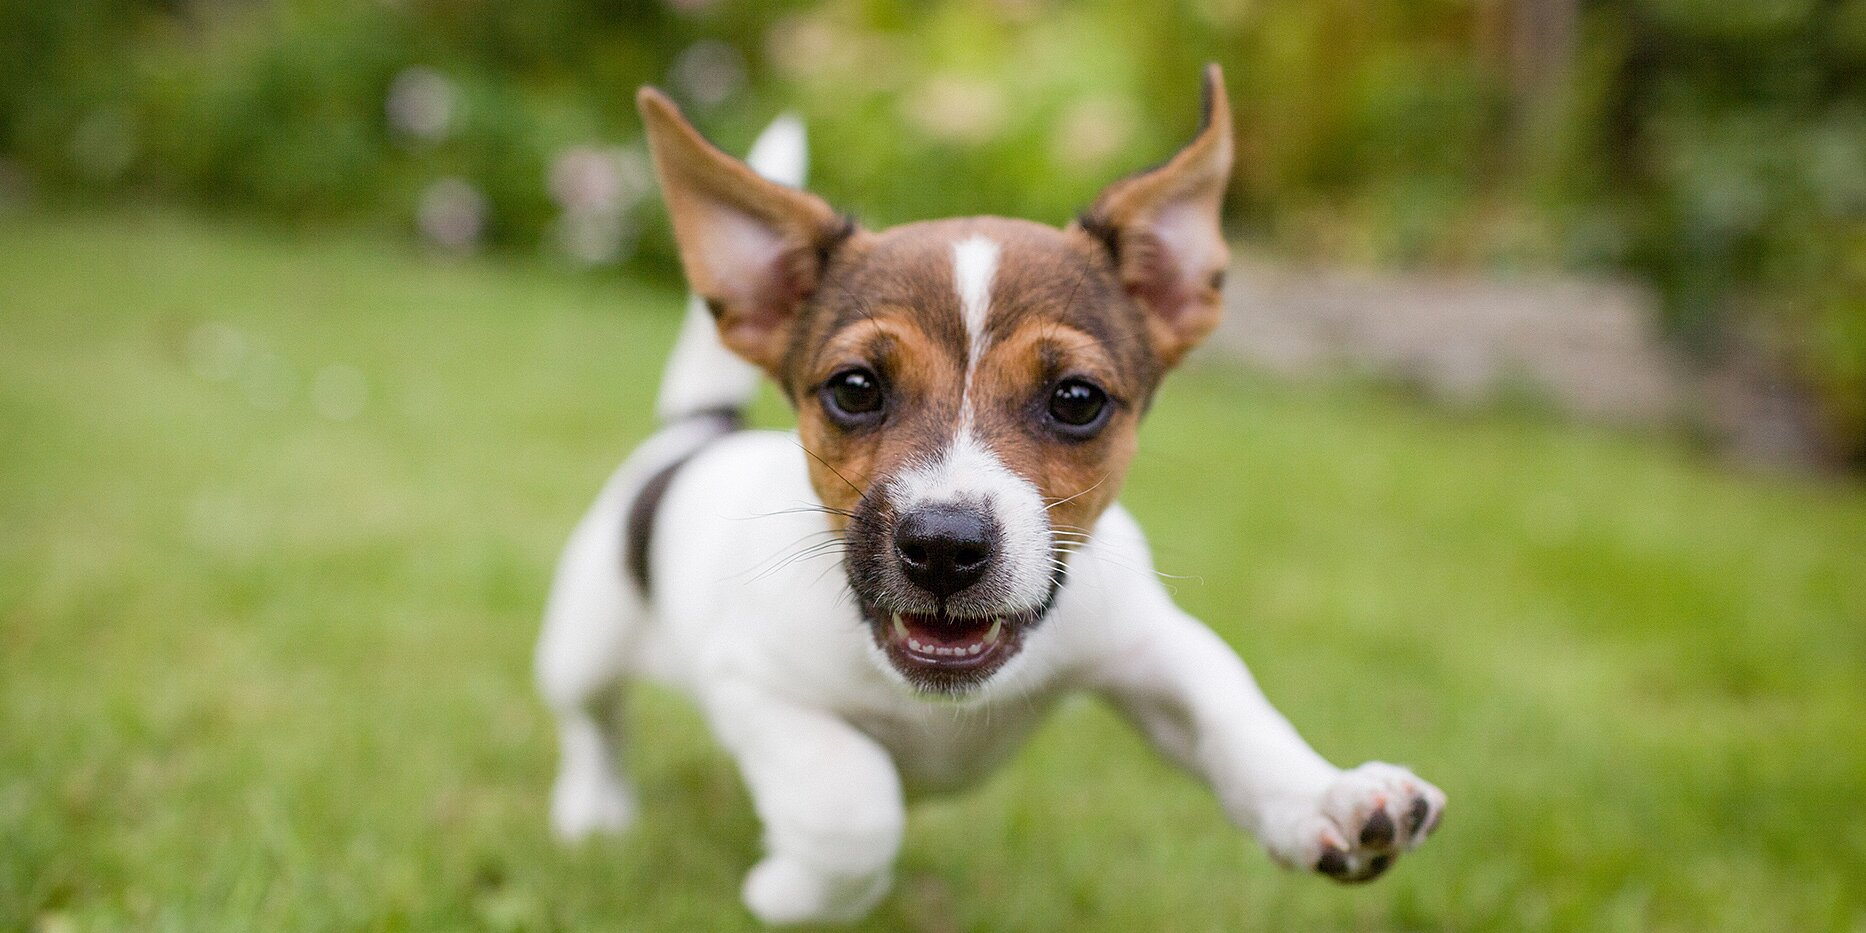 Does Your Dog Get the 'Zoomies'? Here's What's Really Going On